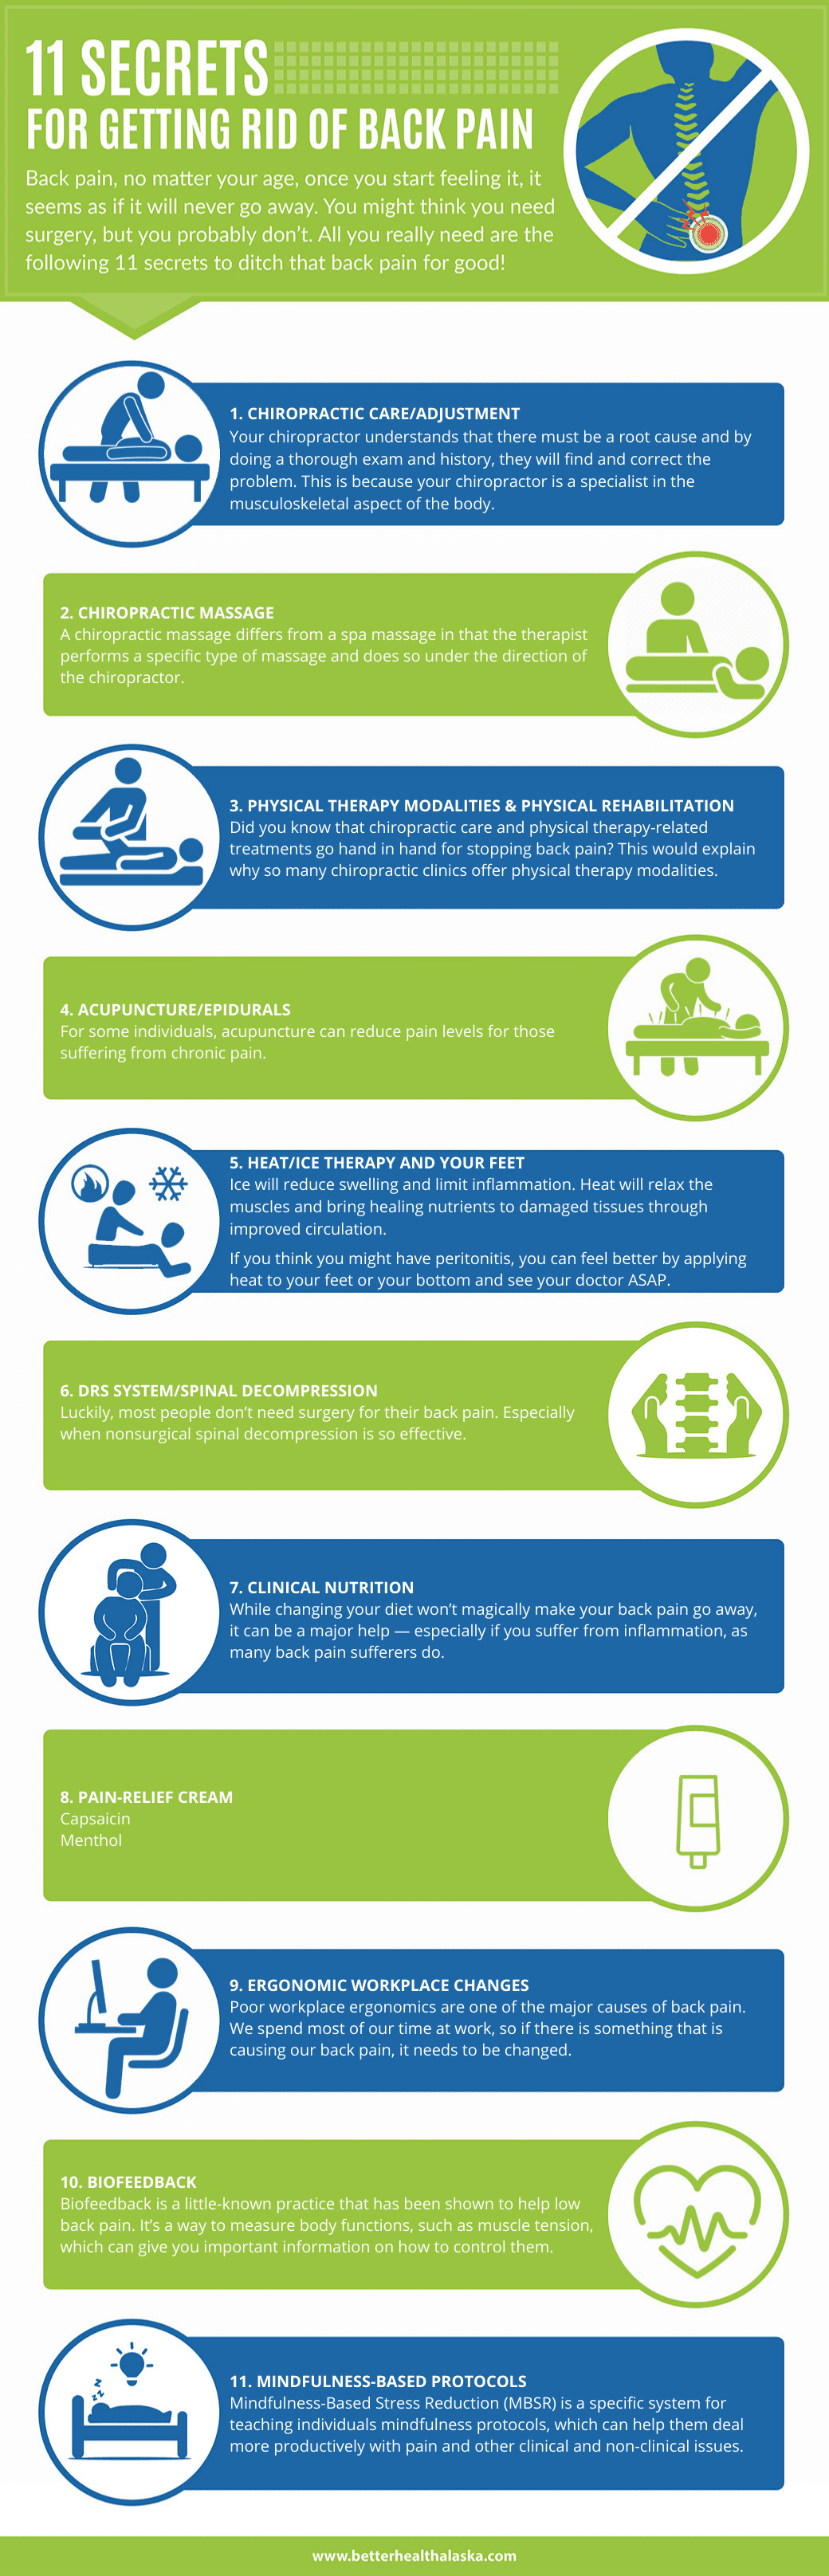 11-Secrets-for-Getting-Rid-of-Back-Pain-infographic